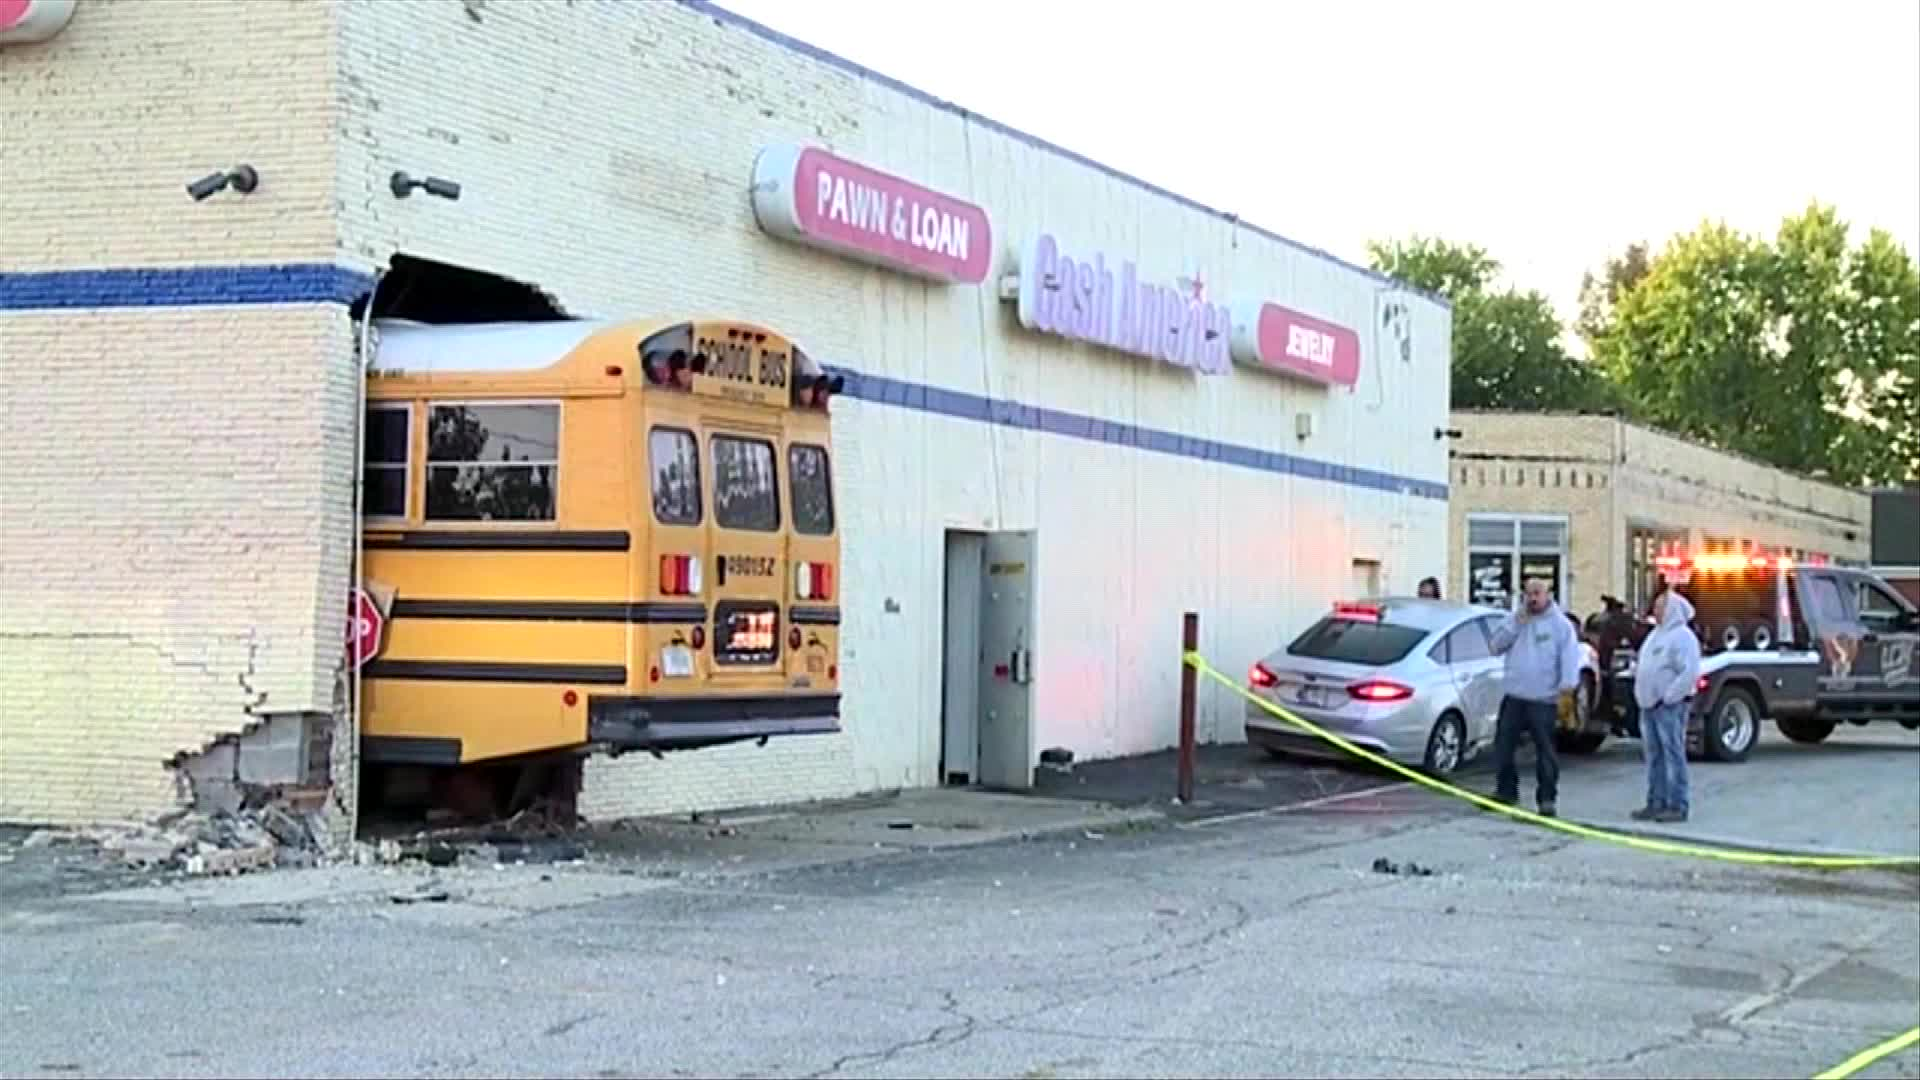 bus crashes into building